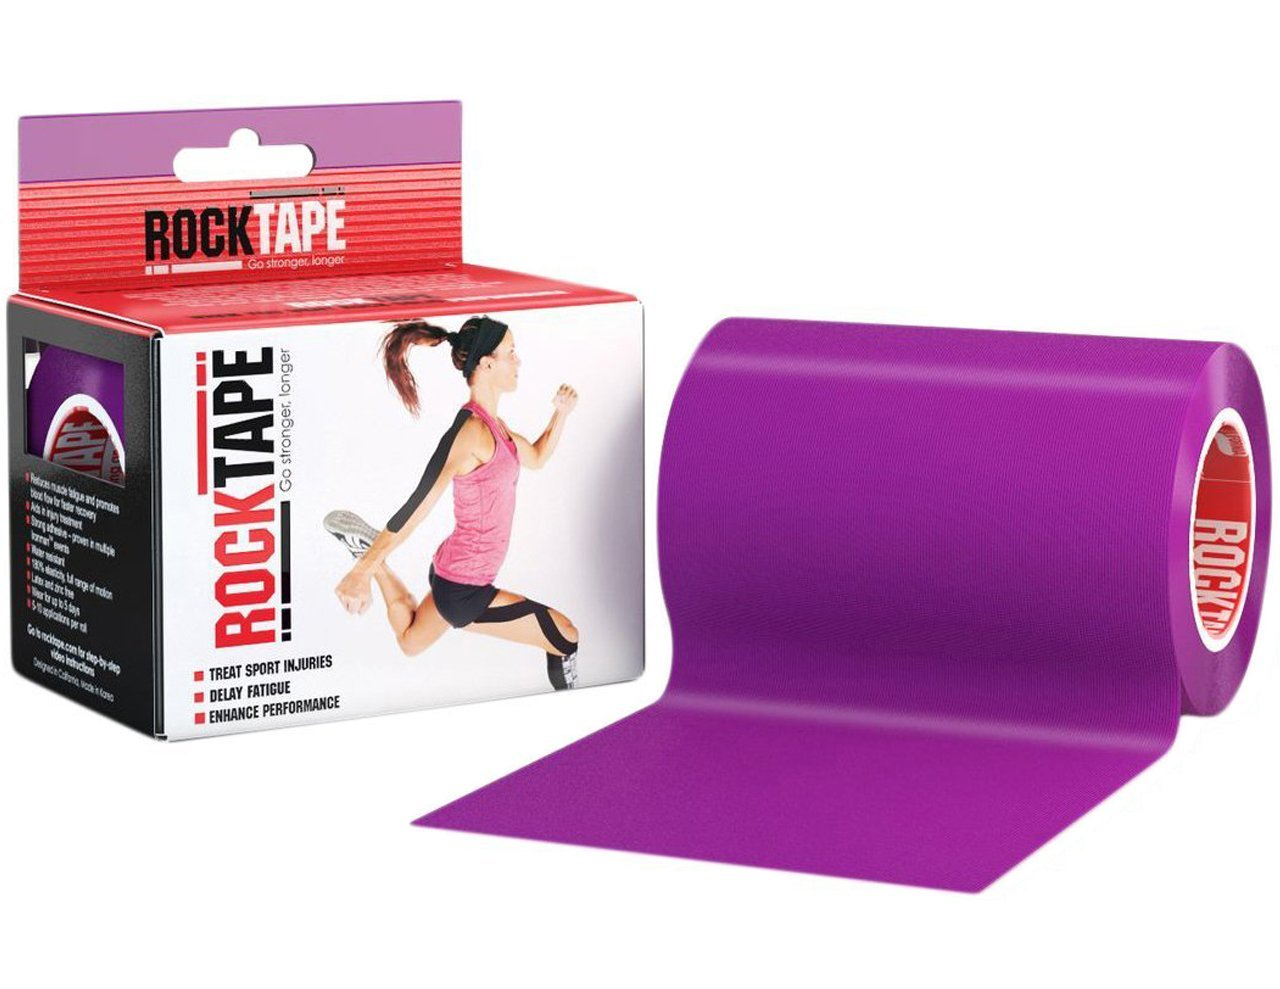 RockTape Active-Recovery Kinesiology Tape for Athletes - Uncut Roll - Extra Wide, Purple, Discontinued by RockTape